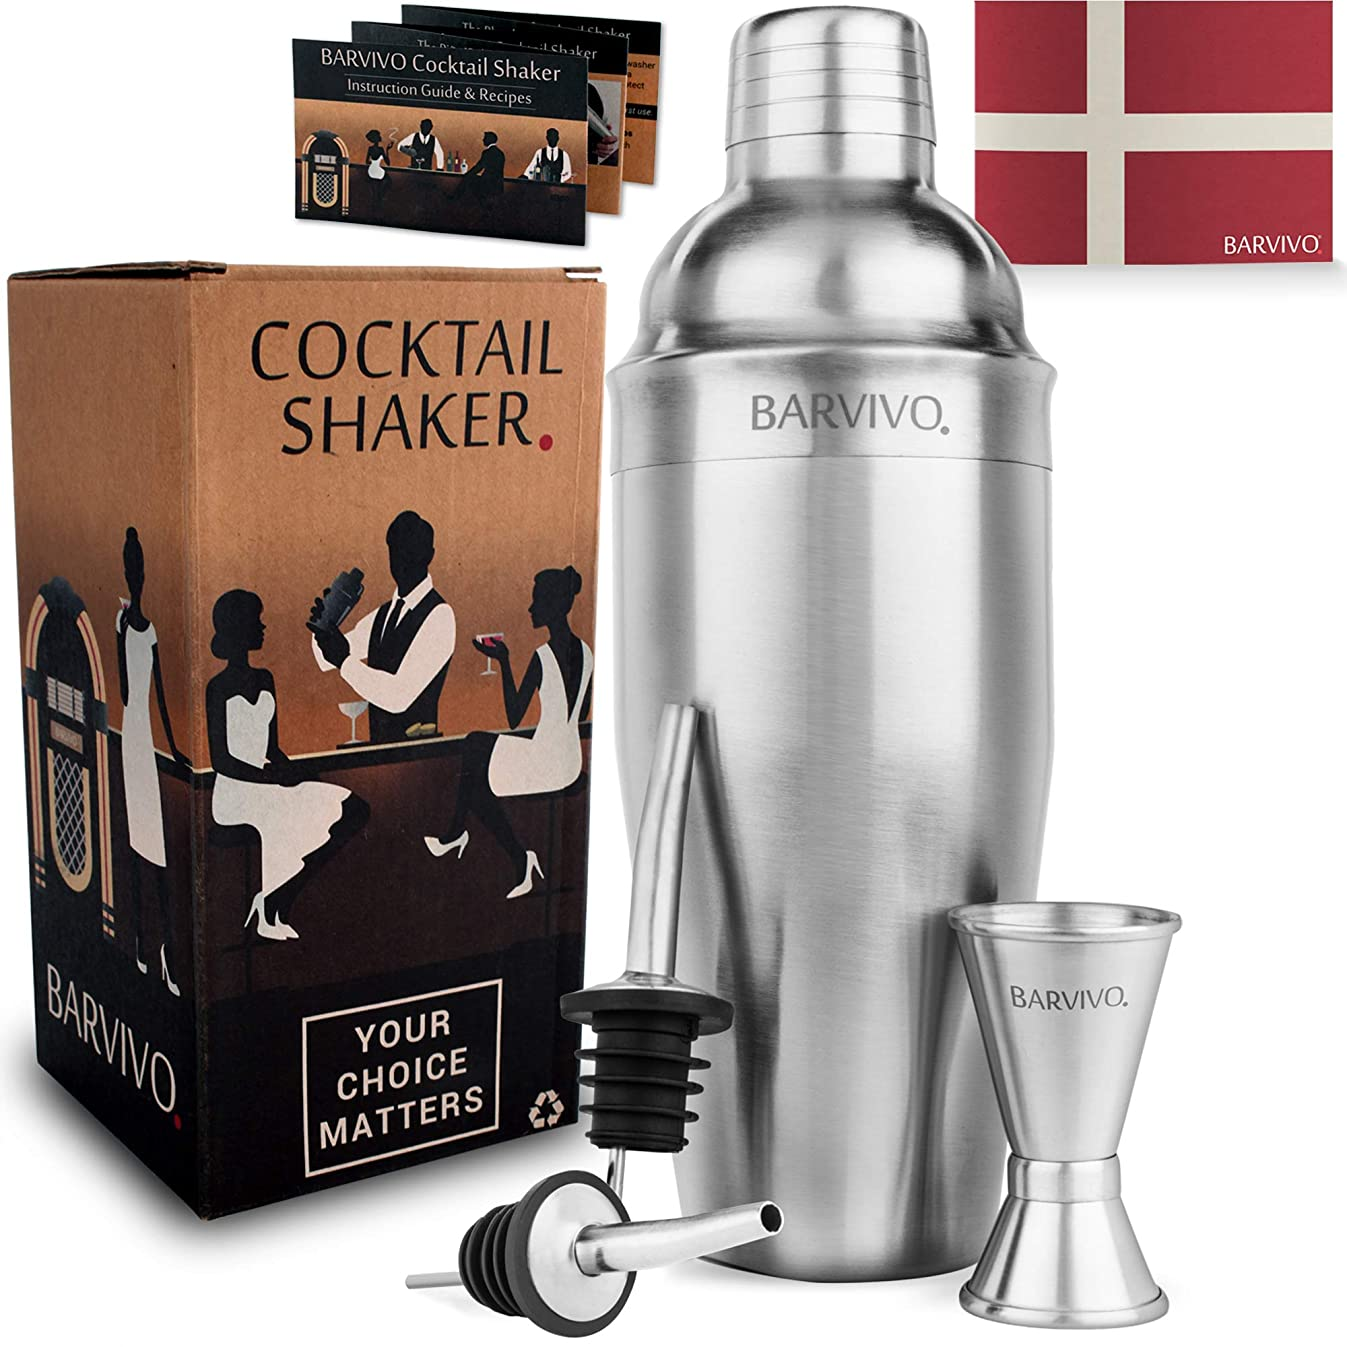 Barvivo Professional Cocktail Shaker Set w/a Double Jigger & 2 Liquor Pourers 24oz Martini Mixer Made of Brushed Stainless Steel Perfect for Mixing Margarita, Manhattan & Other Drinks at Home. …